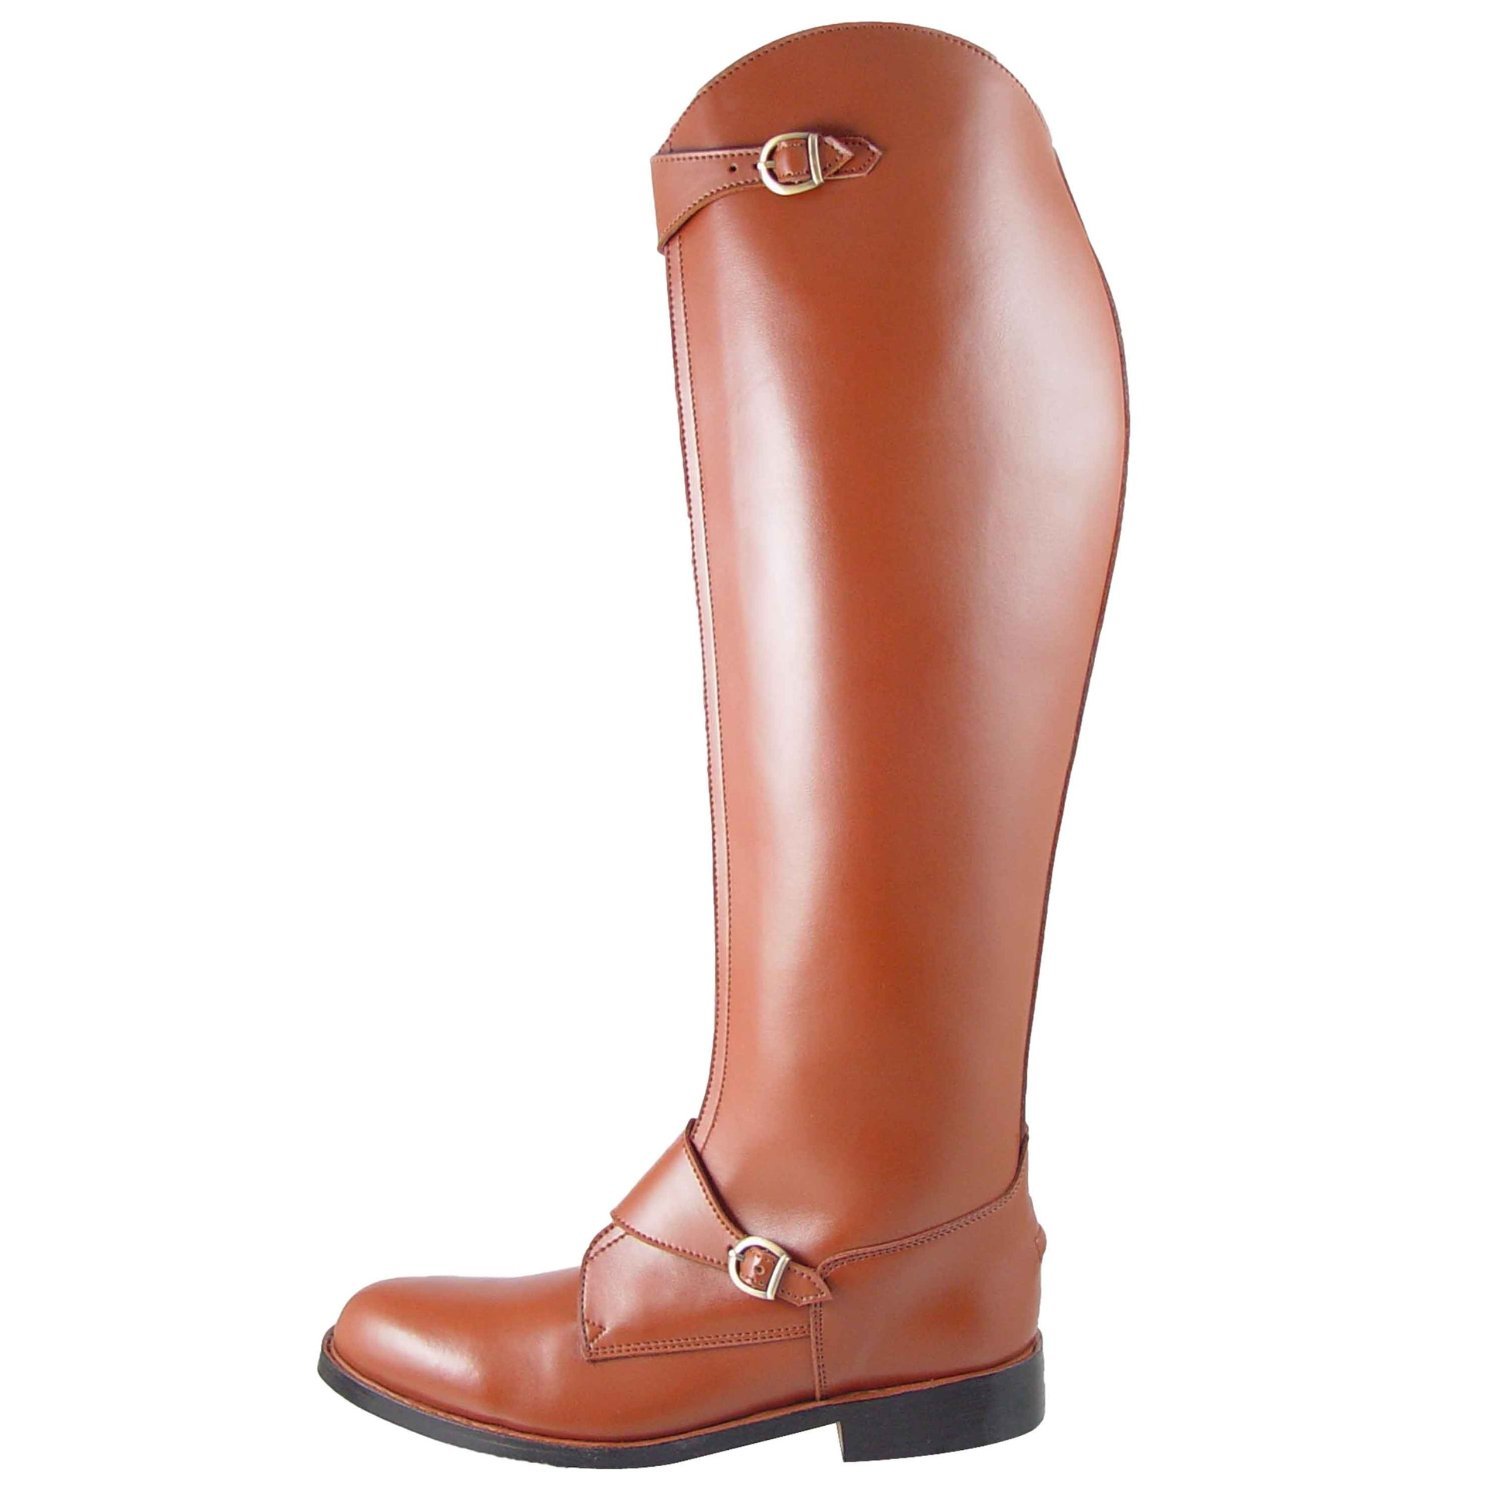 4b872d0f14d ... Tall Knee High Leather Equestrian Polo Boots. null. null. Get  Quotations · Hispar Men Invader-2 Polo Boots Horseback Riding Sports  Argentanian Style two ...